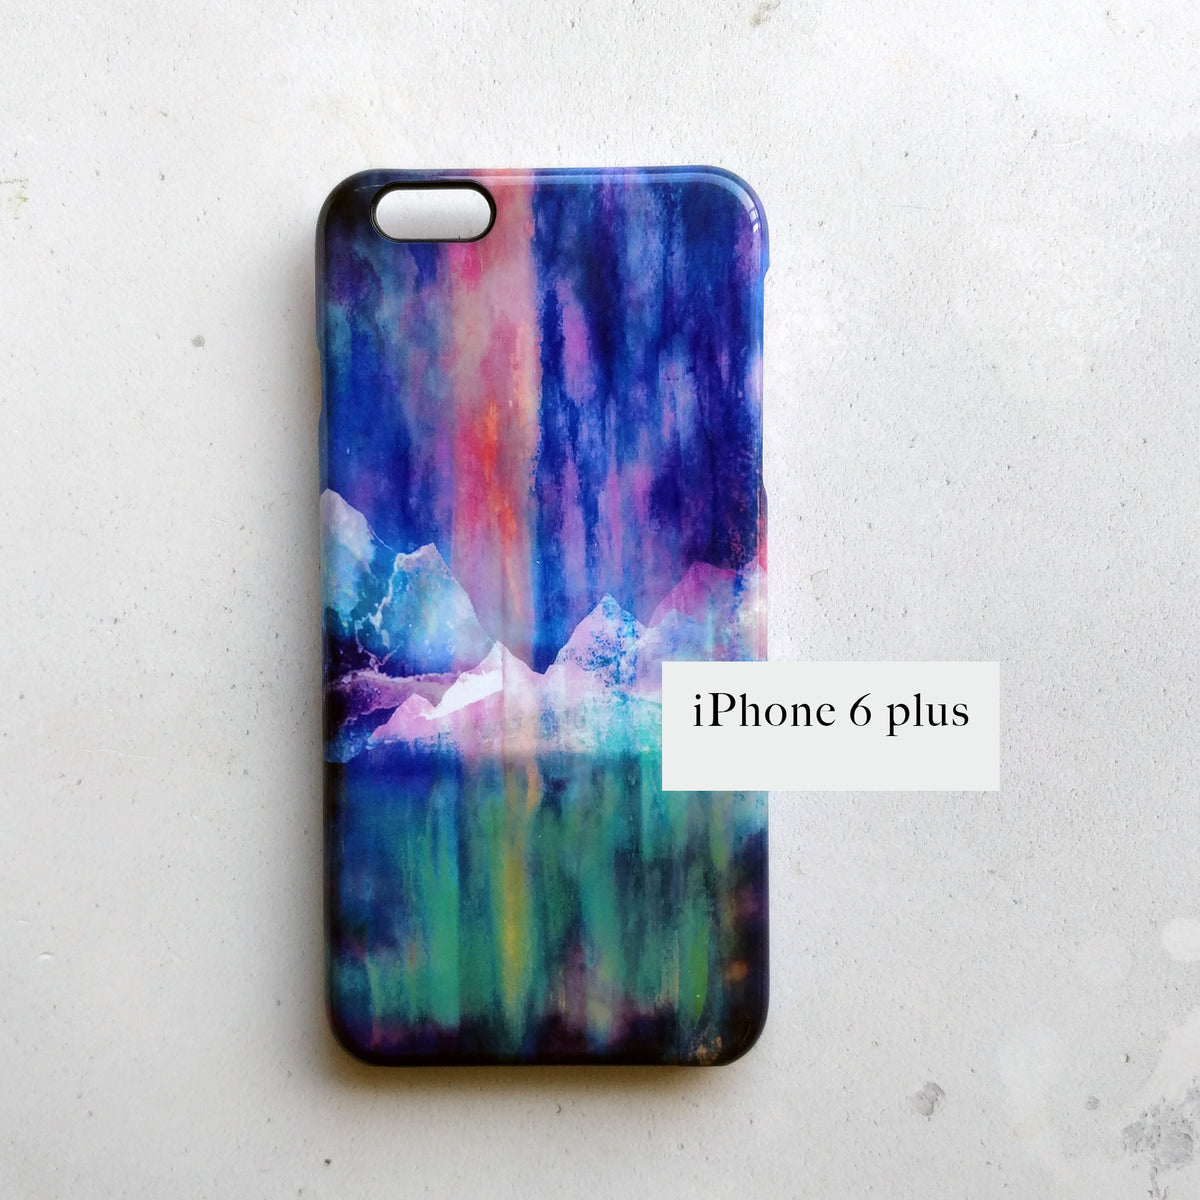 Northern Lights phone case for iPhone 6 Plus